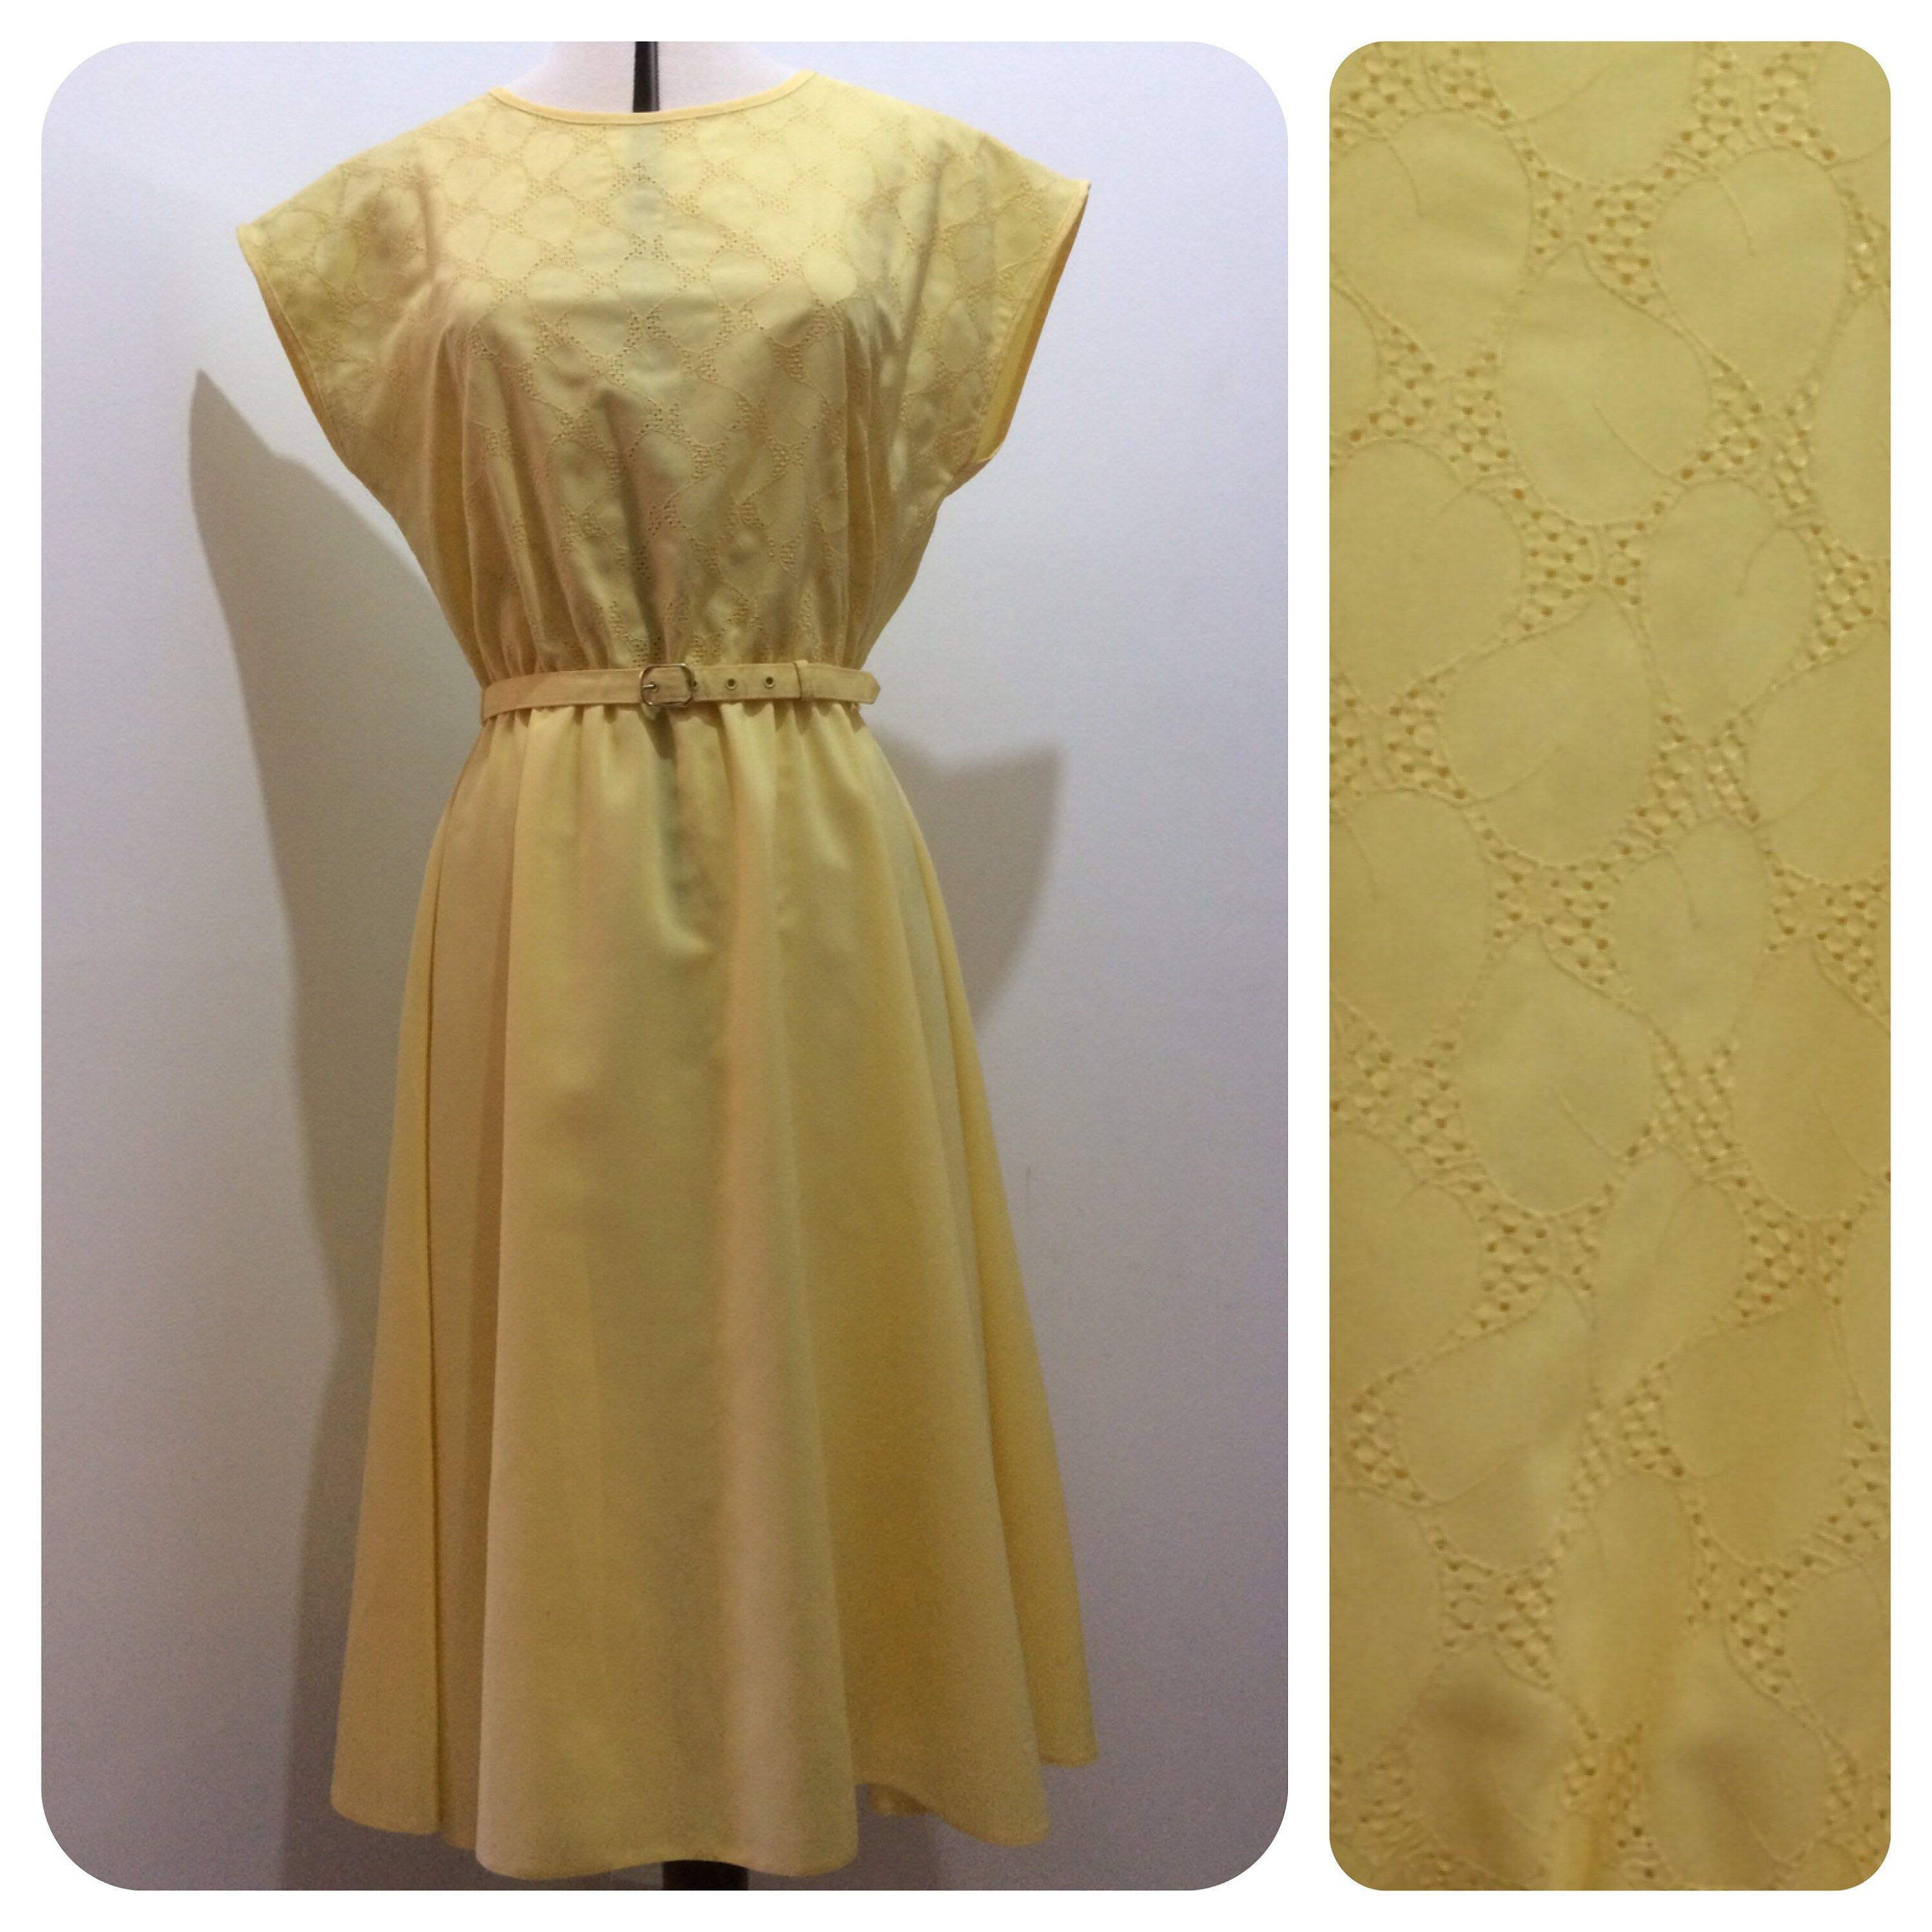 Vintage 80 S Pretty Yellow Sun Dress Sunny Yellow Day Dress Scooter Girl Frock Uk 12 14 M In 2020 Frocks For Girls Yellow Dress Summer Dresses